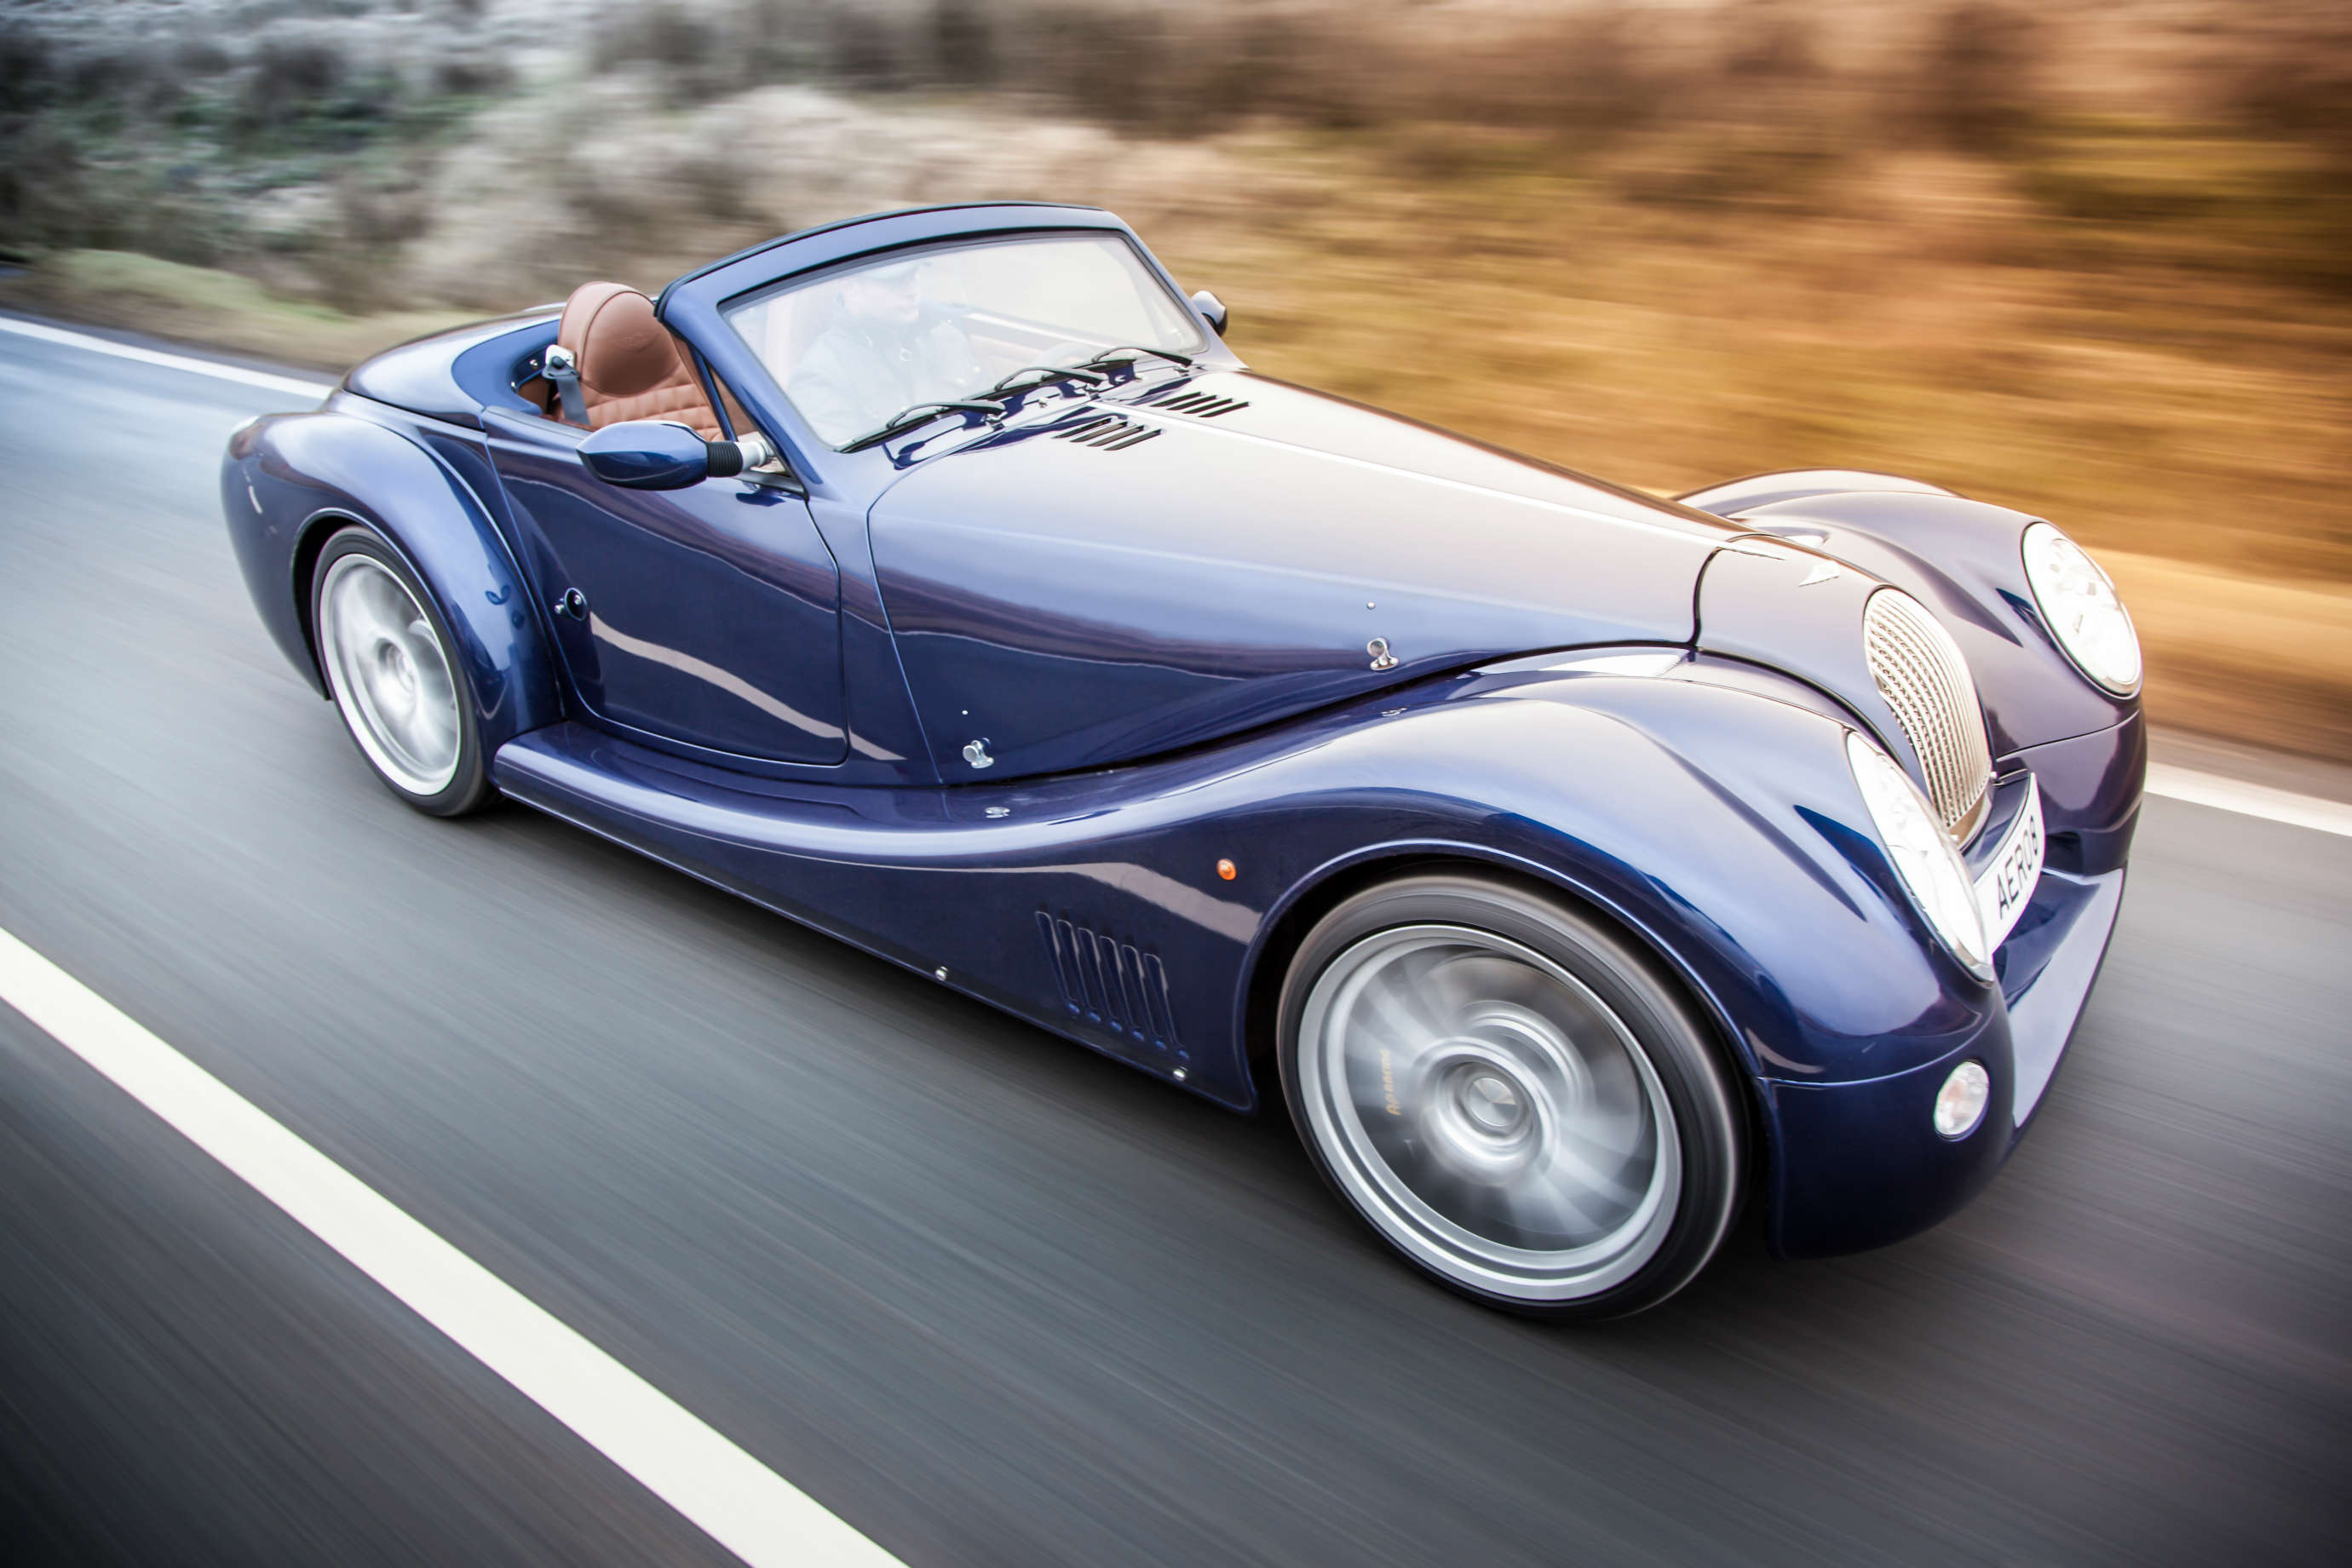 Morgan Cars For Sale Price